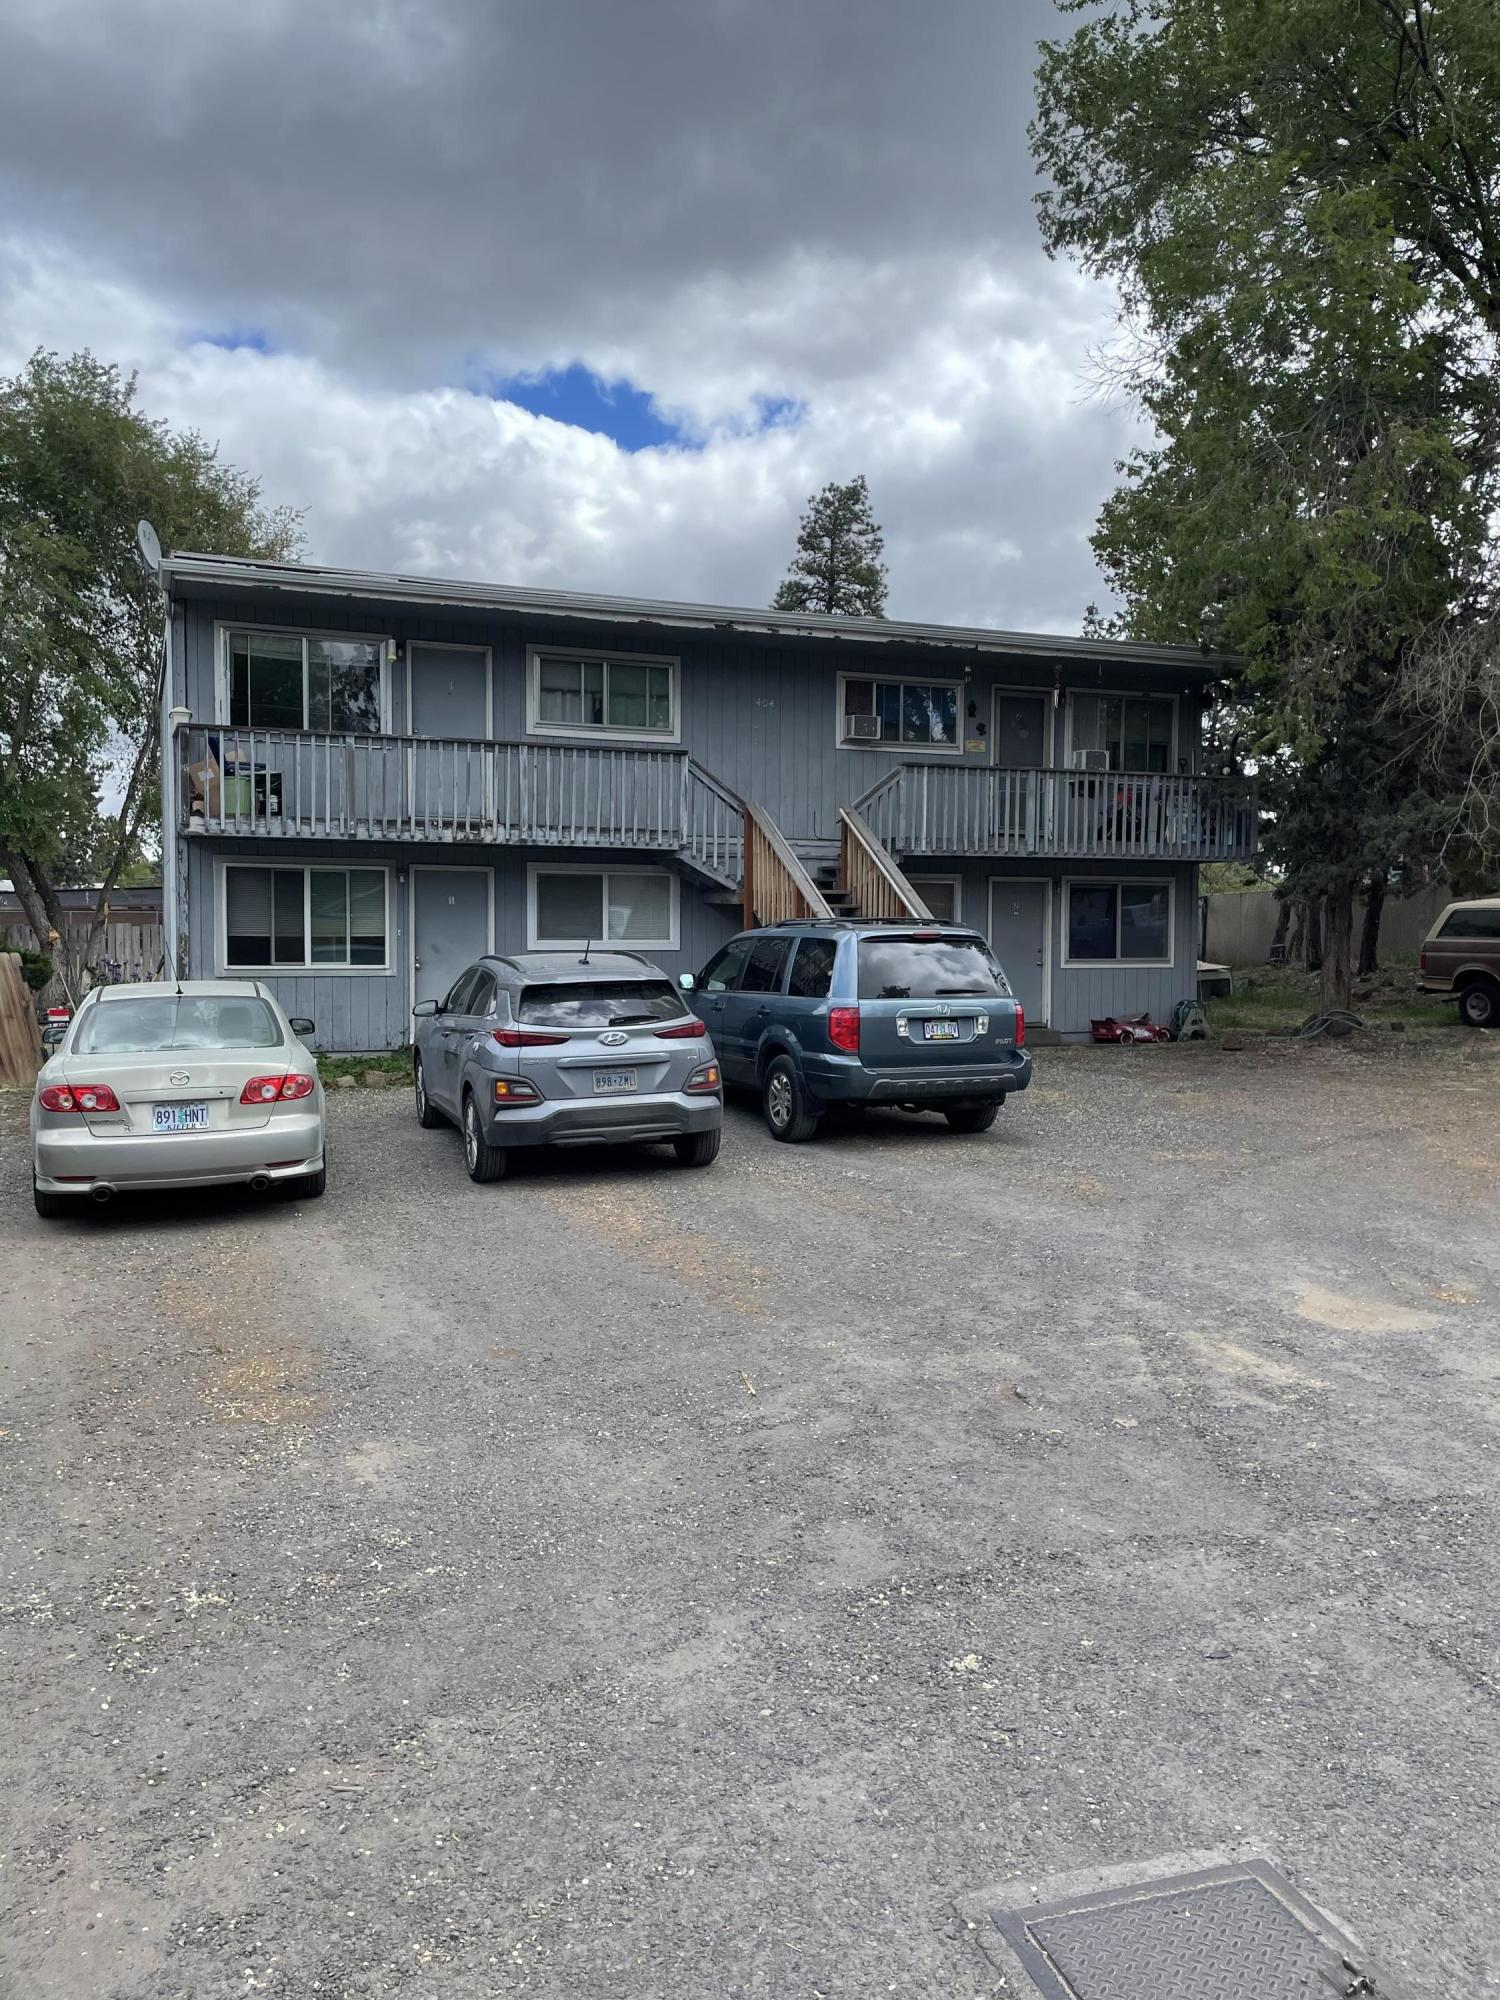 Bend Fixer Fourplex.  Great price point.  Centrally located near Jaycee Park.  All one bedroom units.  Fully occupied with long term tenants all current on rent payments.  Much needed affordable housing.  In Opportunity Zone.  Possible potential for additional units, but buyer must verify.  Rent increase scheduled for October 1.  Lots of parking.  Great value add opportunity.